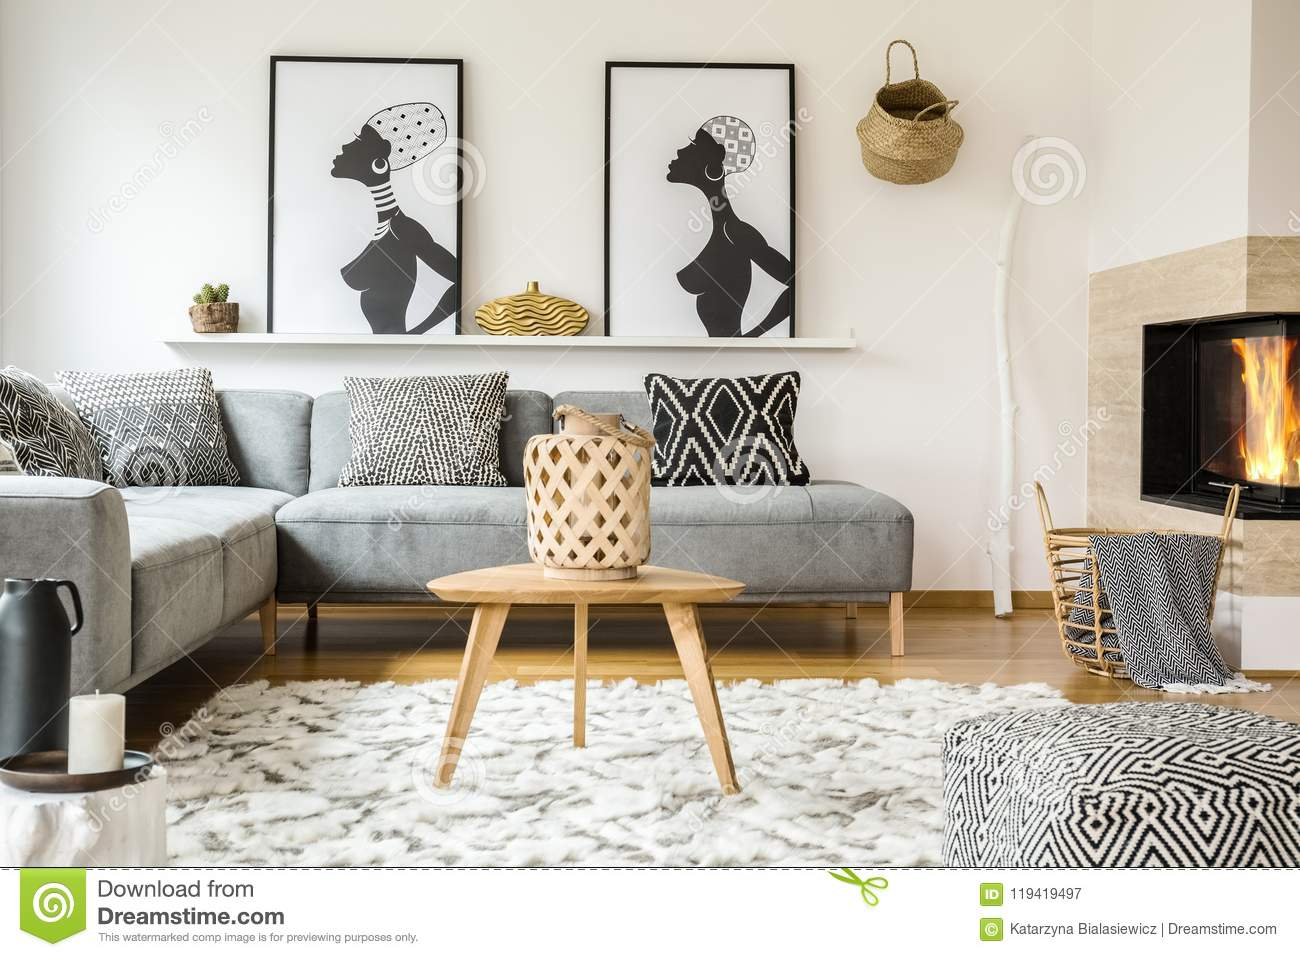 Wooden table on carpet in african living room interior with patterned cushions on grey sofa. Real photo